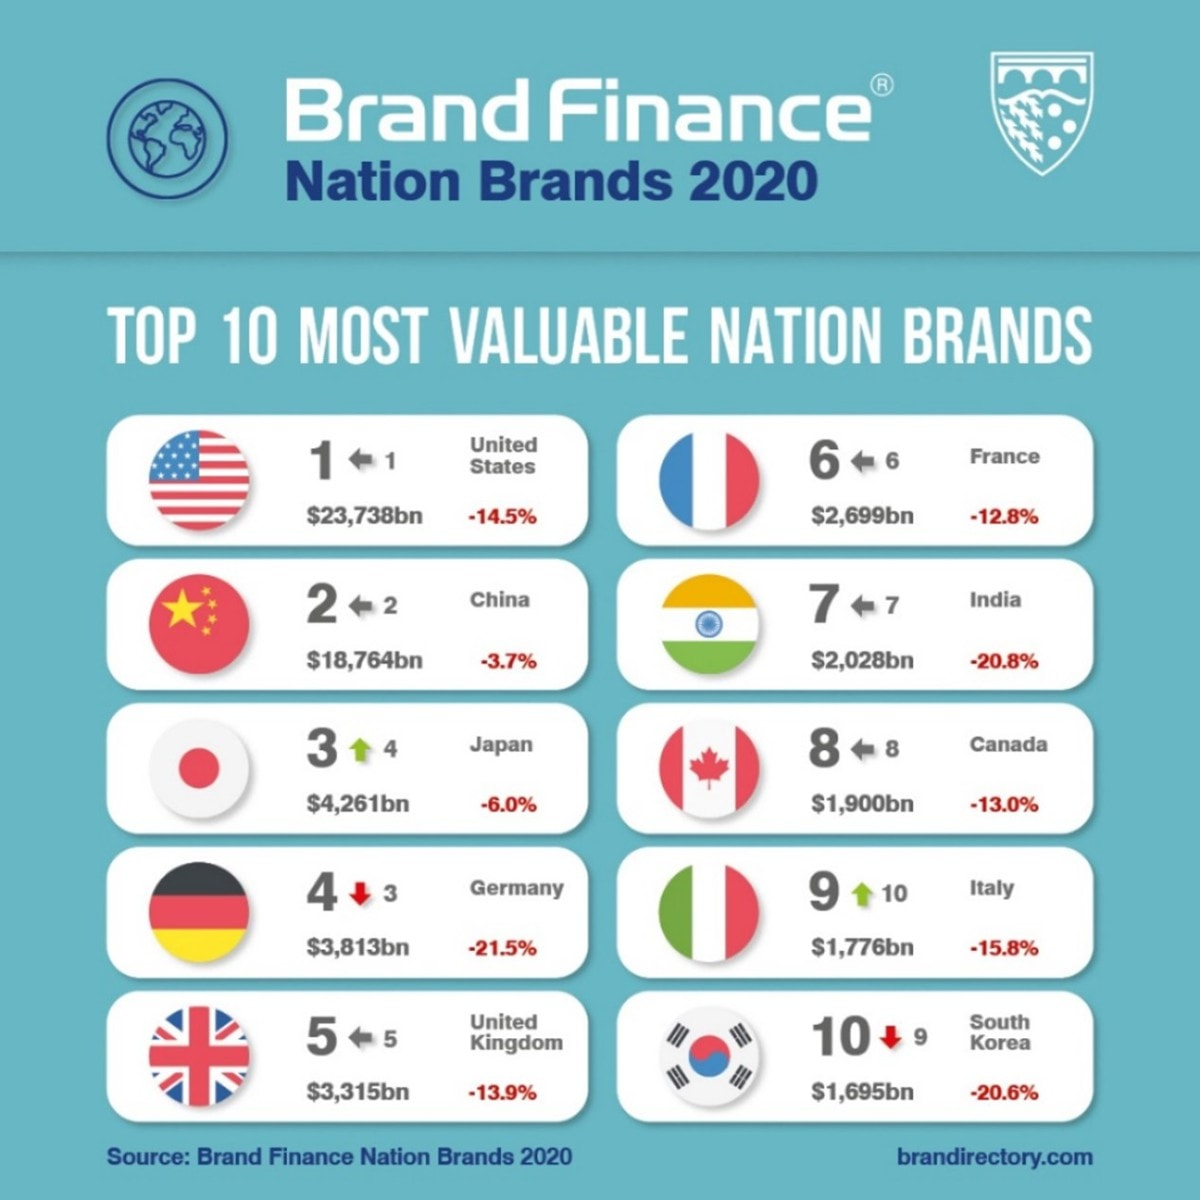 Top 10 Most Valuable Nation Brands